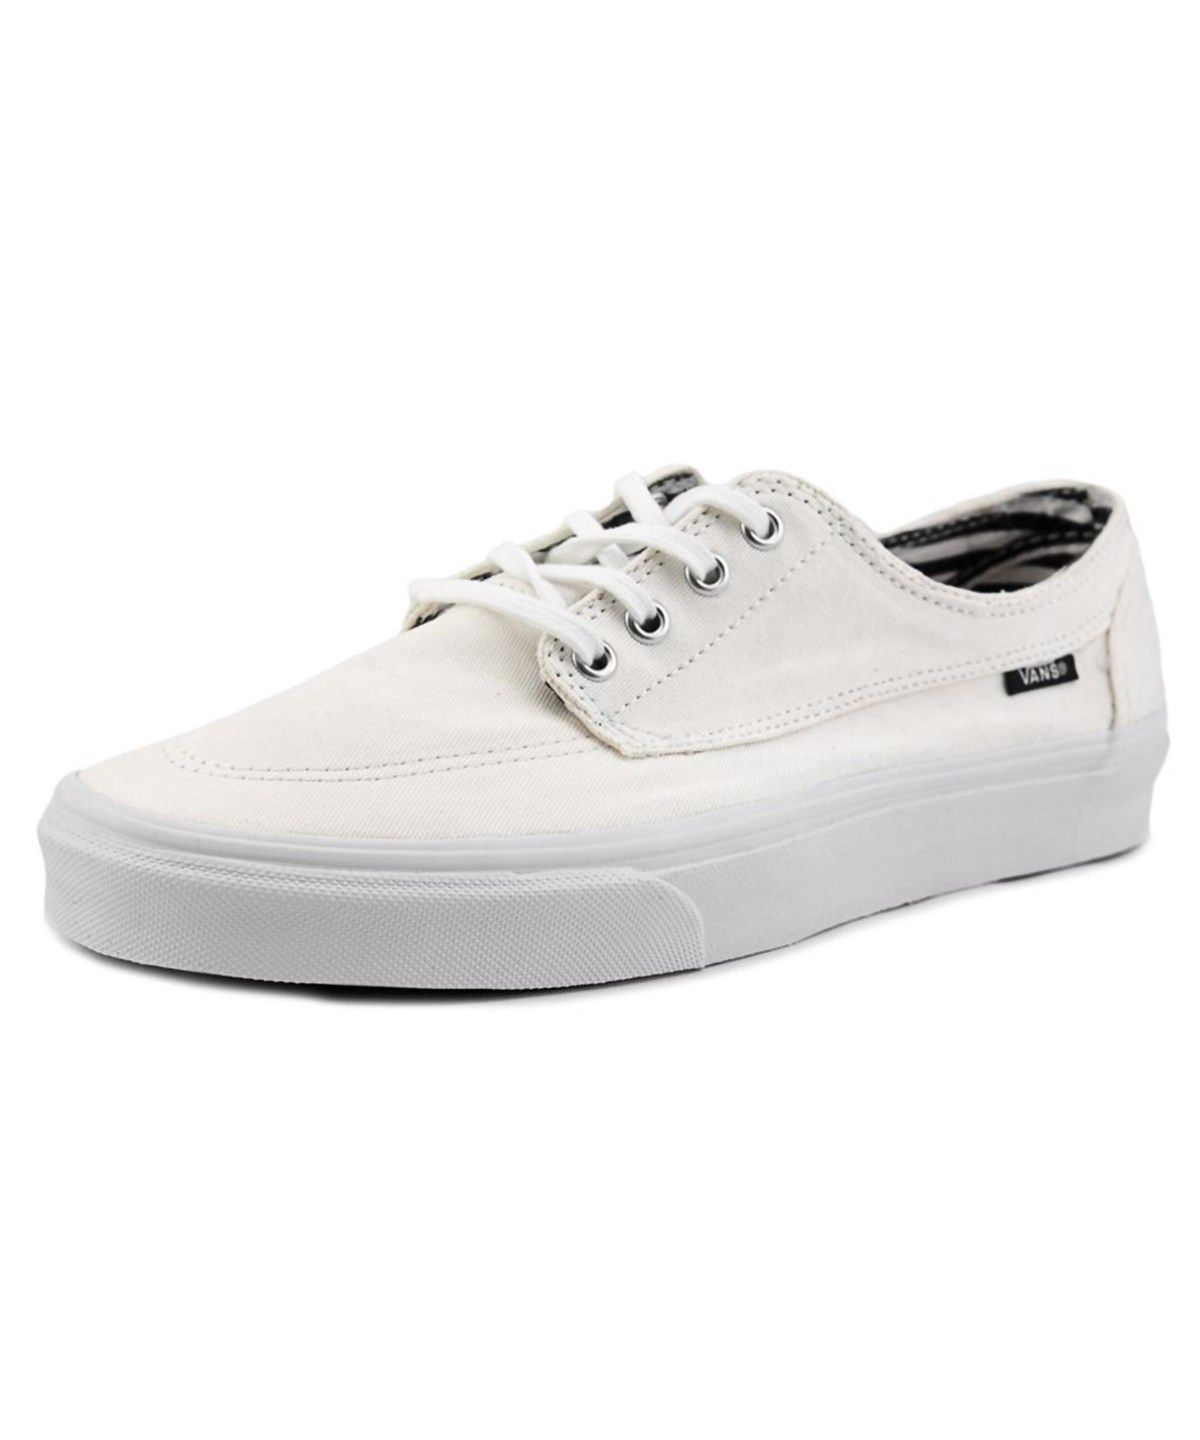 b0e0900e9e911f VANS VANS BRIGATA MEN ROUND TOE CANVAS WHITE SKATE SHOE .  vans  shoes   sneakers